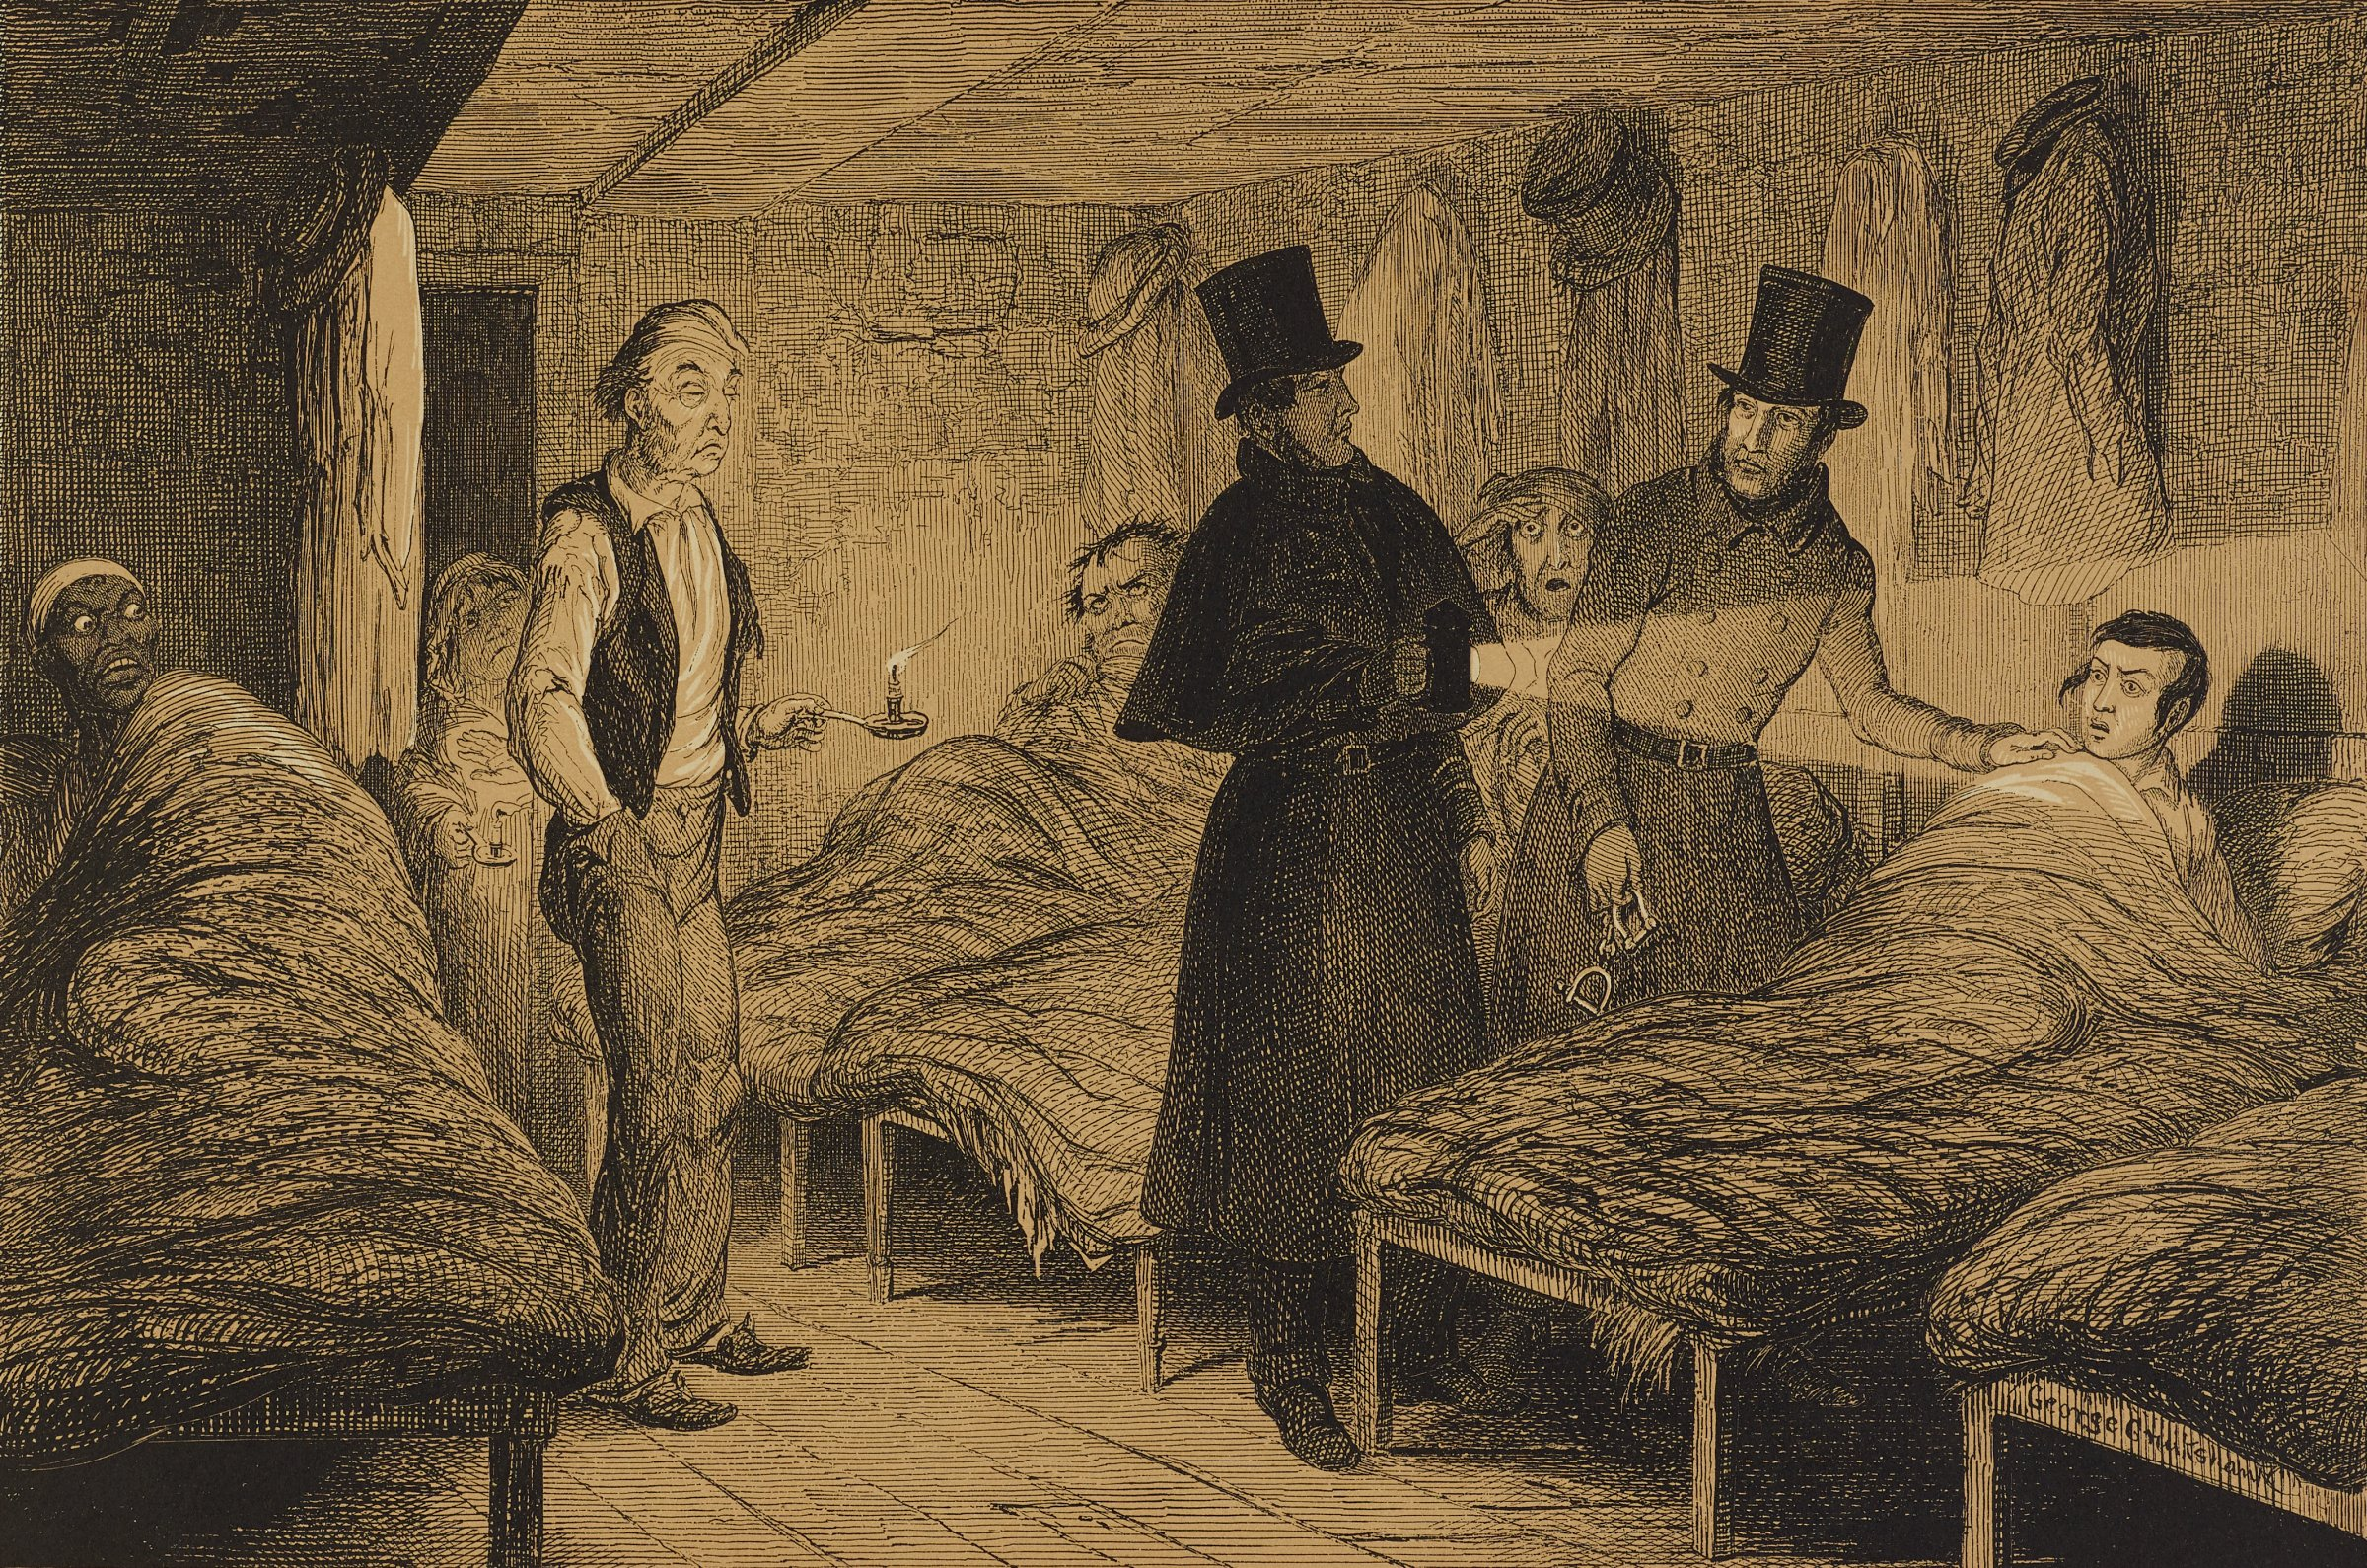 Two police officers stand over the bed of a young man with a surprised expression. Other men rise from their beds with various expressions.